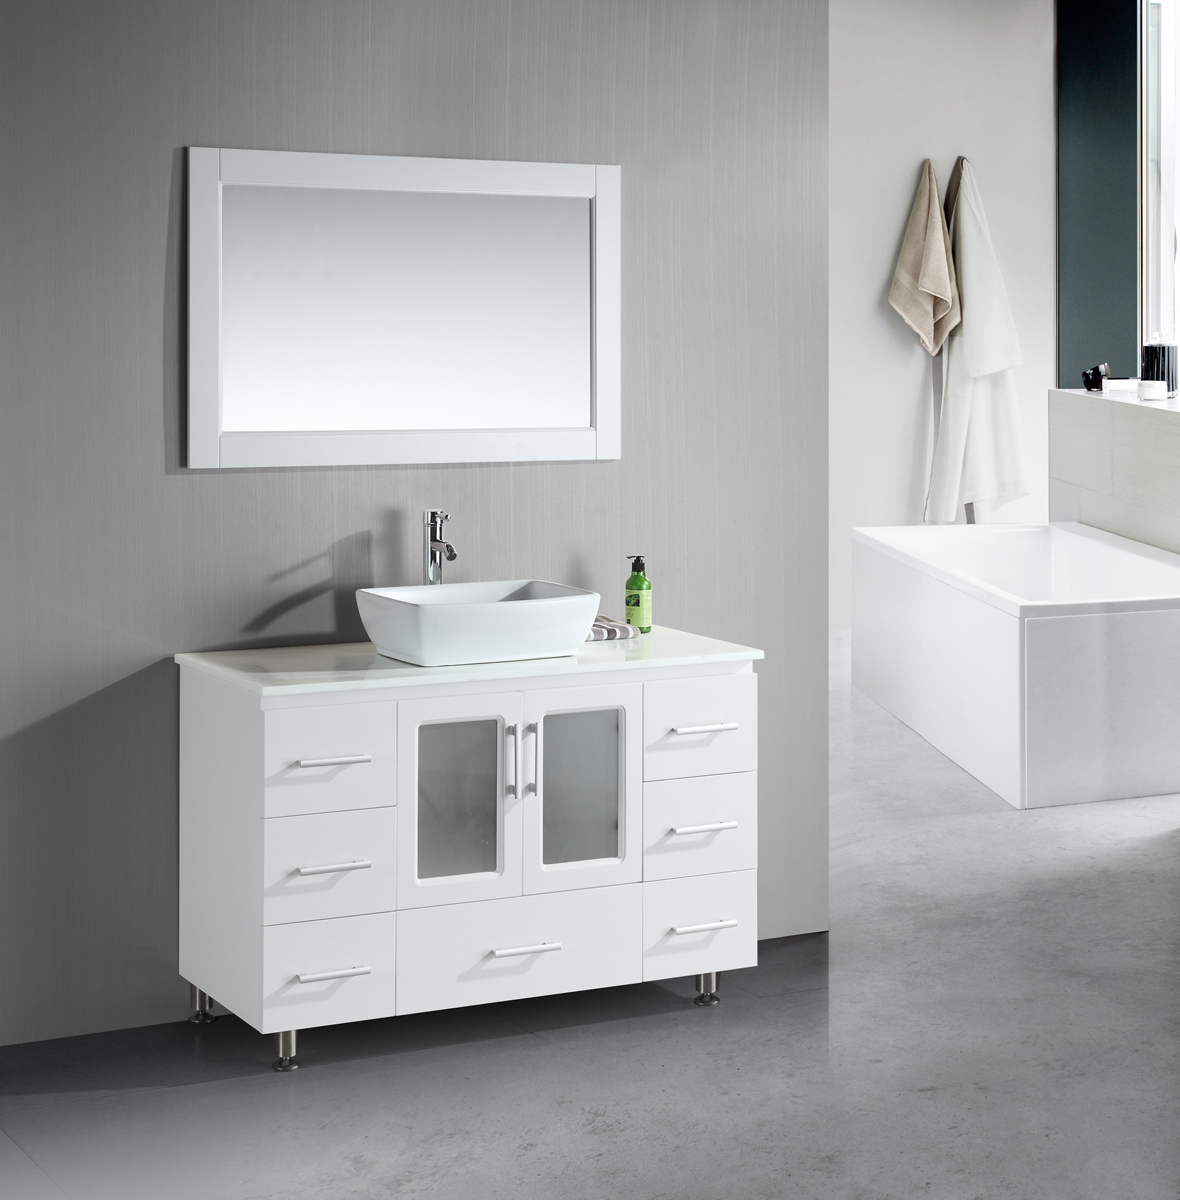 Small Vessel Sink Vanity : minimalist small bathroom vanities with vessel sinks with white sink ...